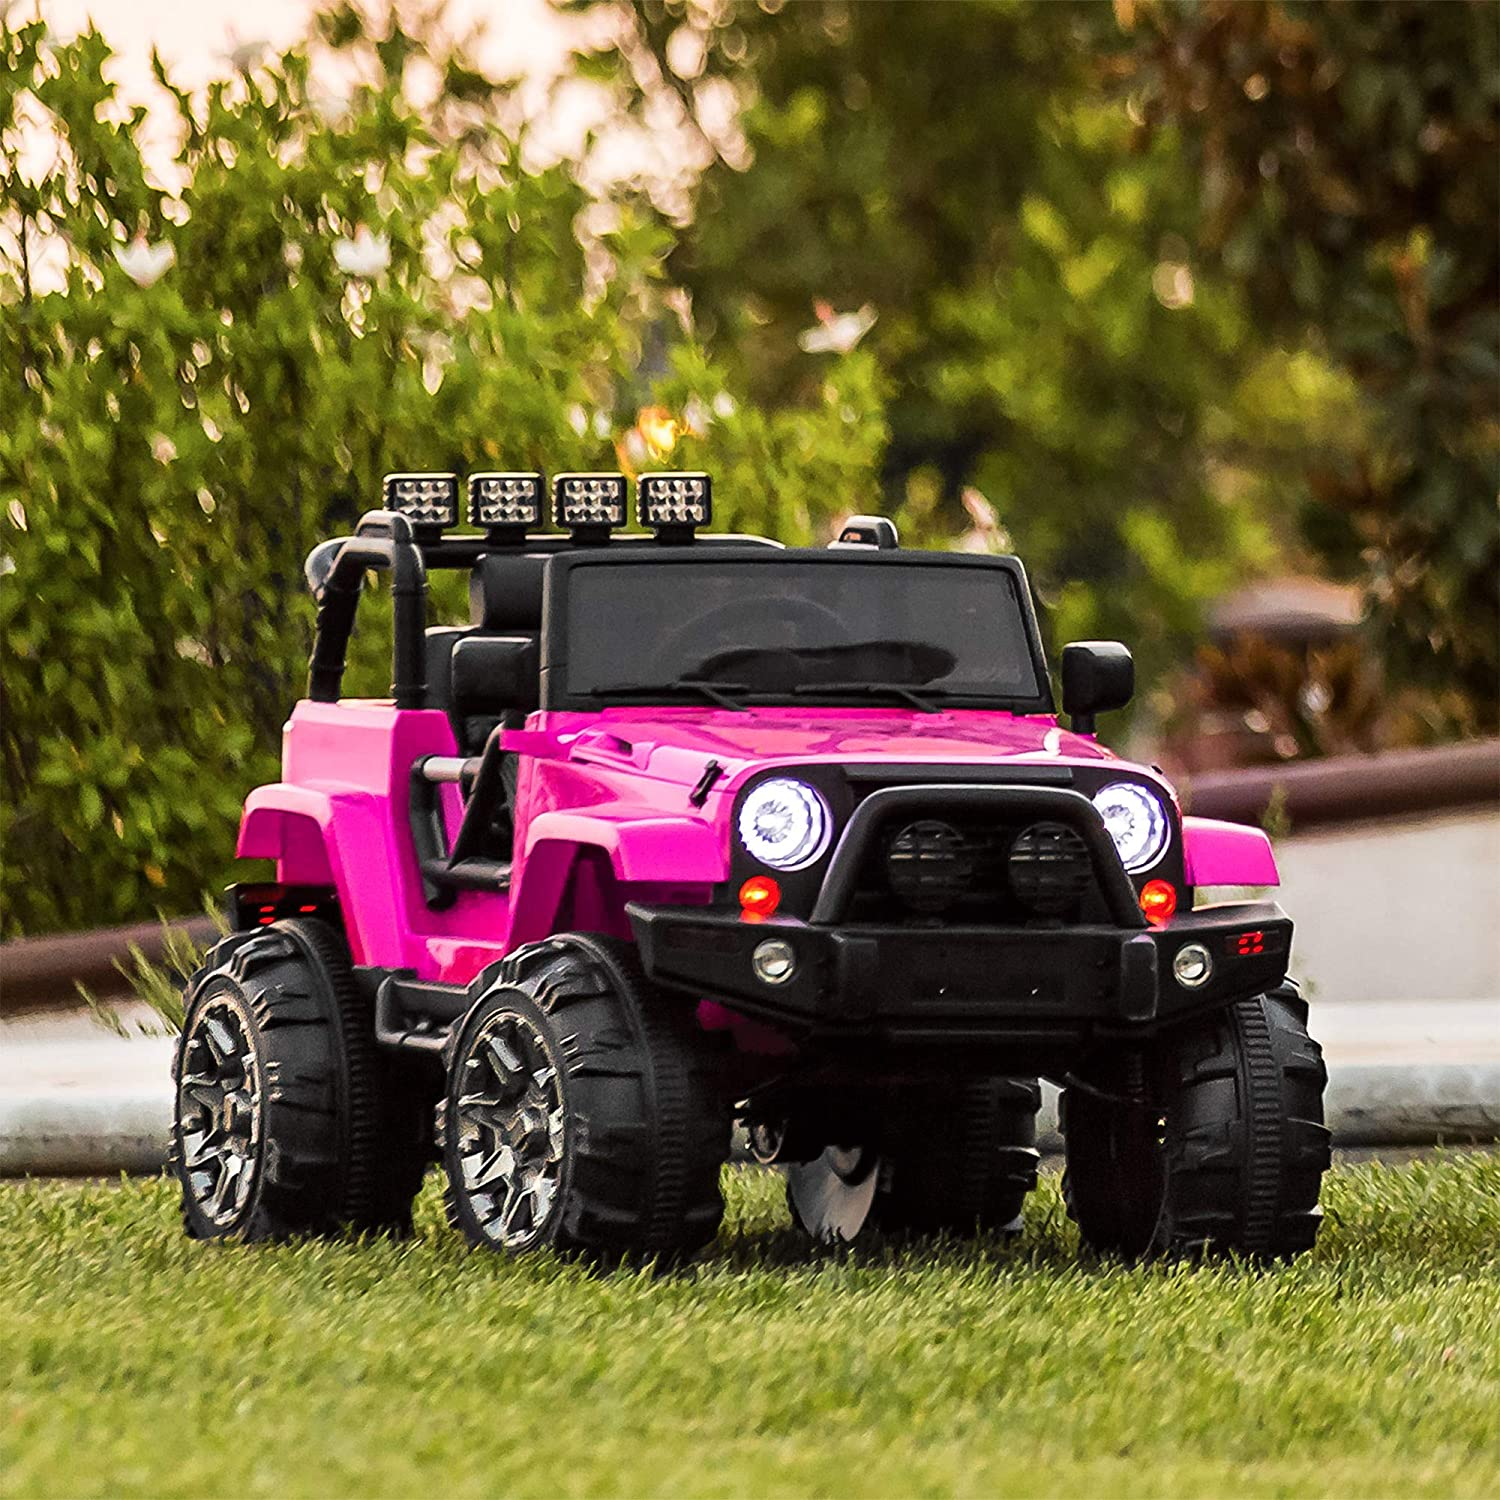 amazon com: best choice products 12v ride on car truck w/ remote control, 3  speeds, spring suspension, led light - pink: toys & games